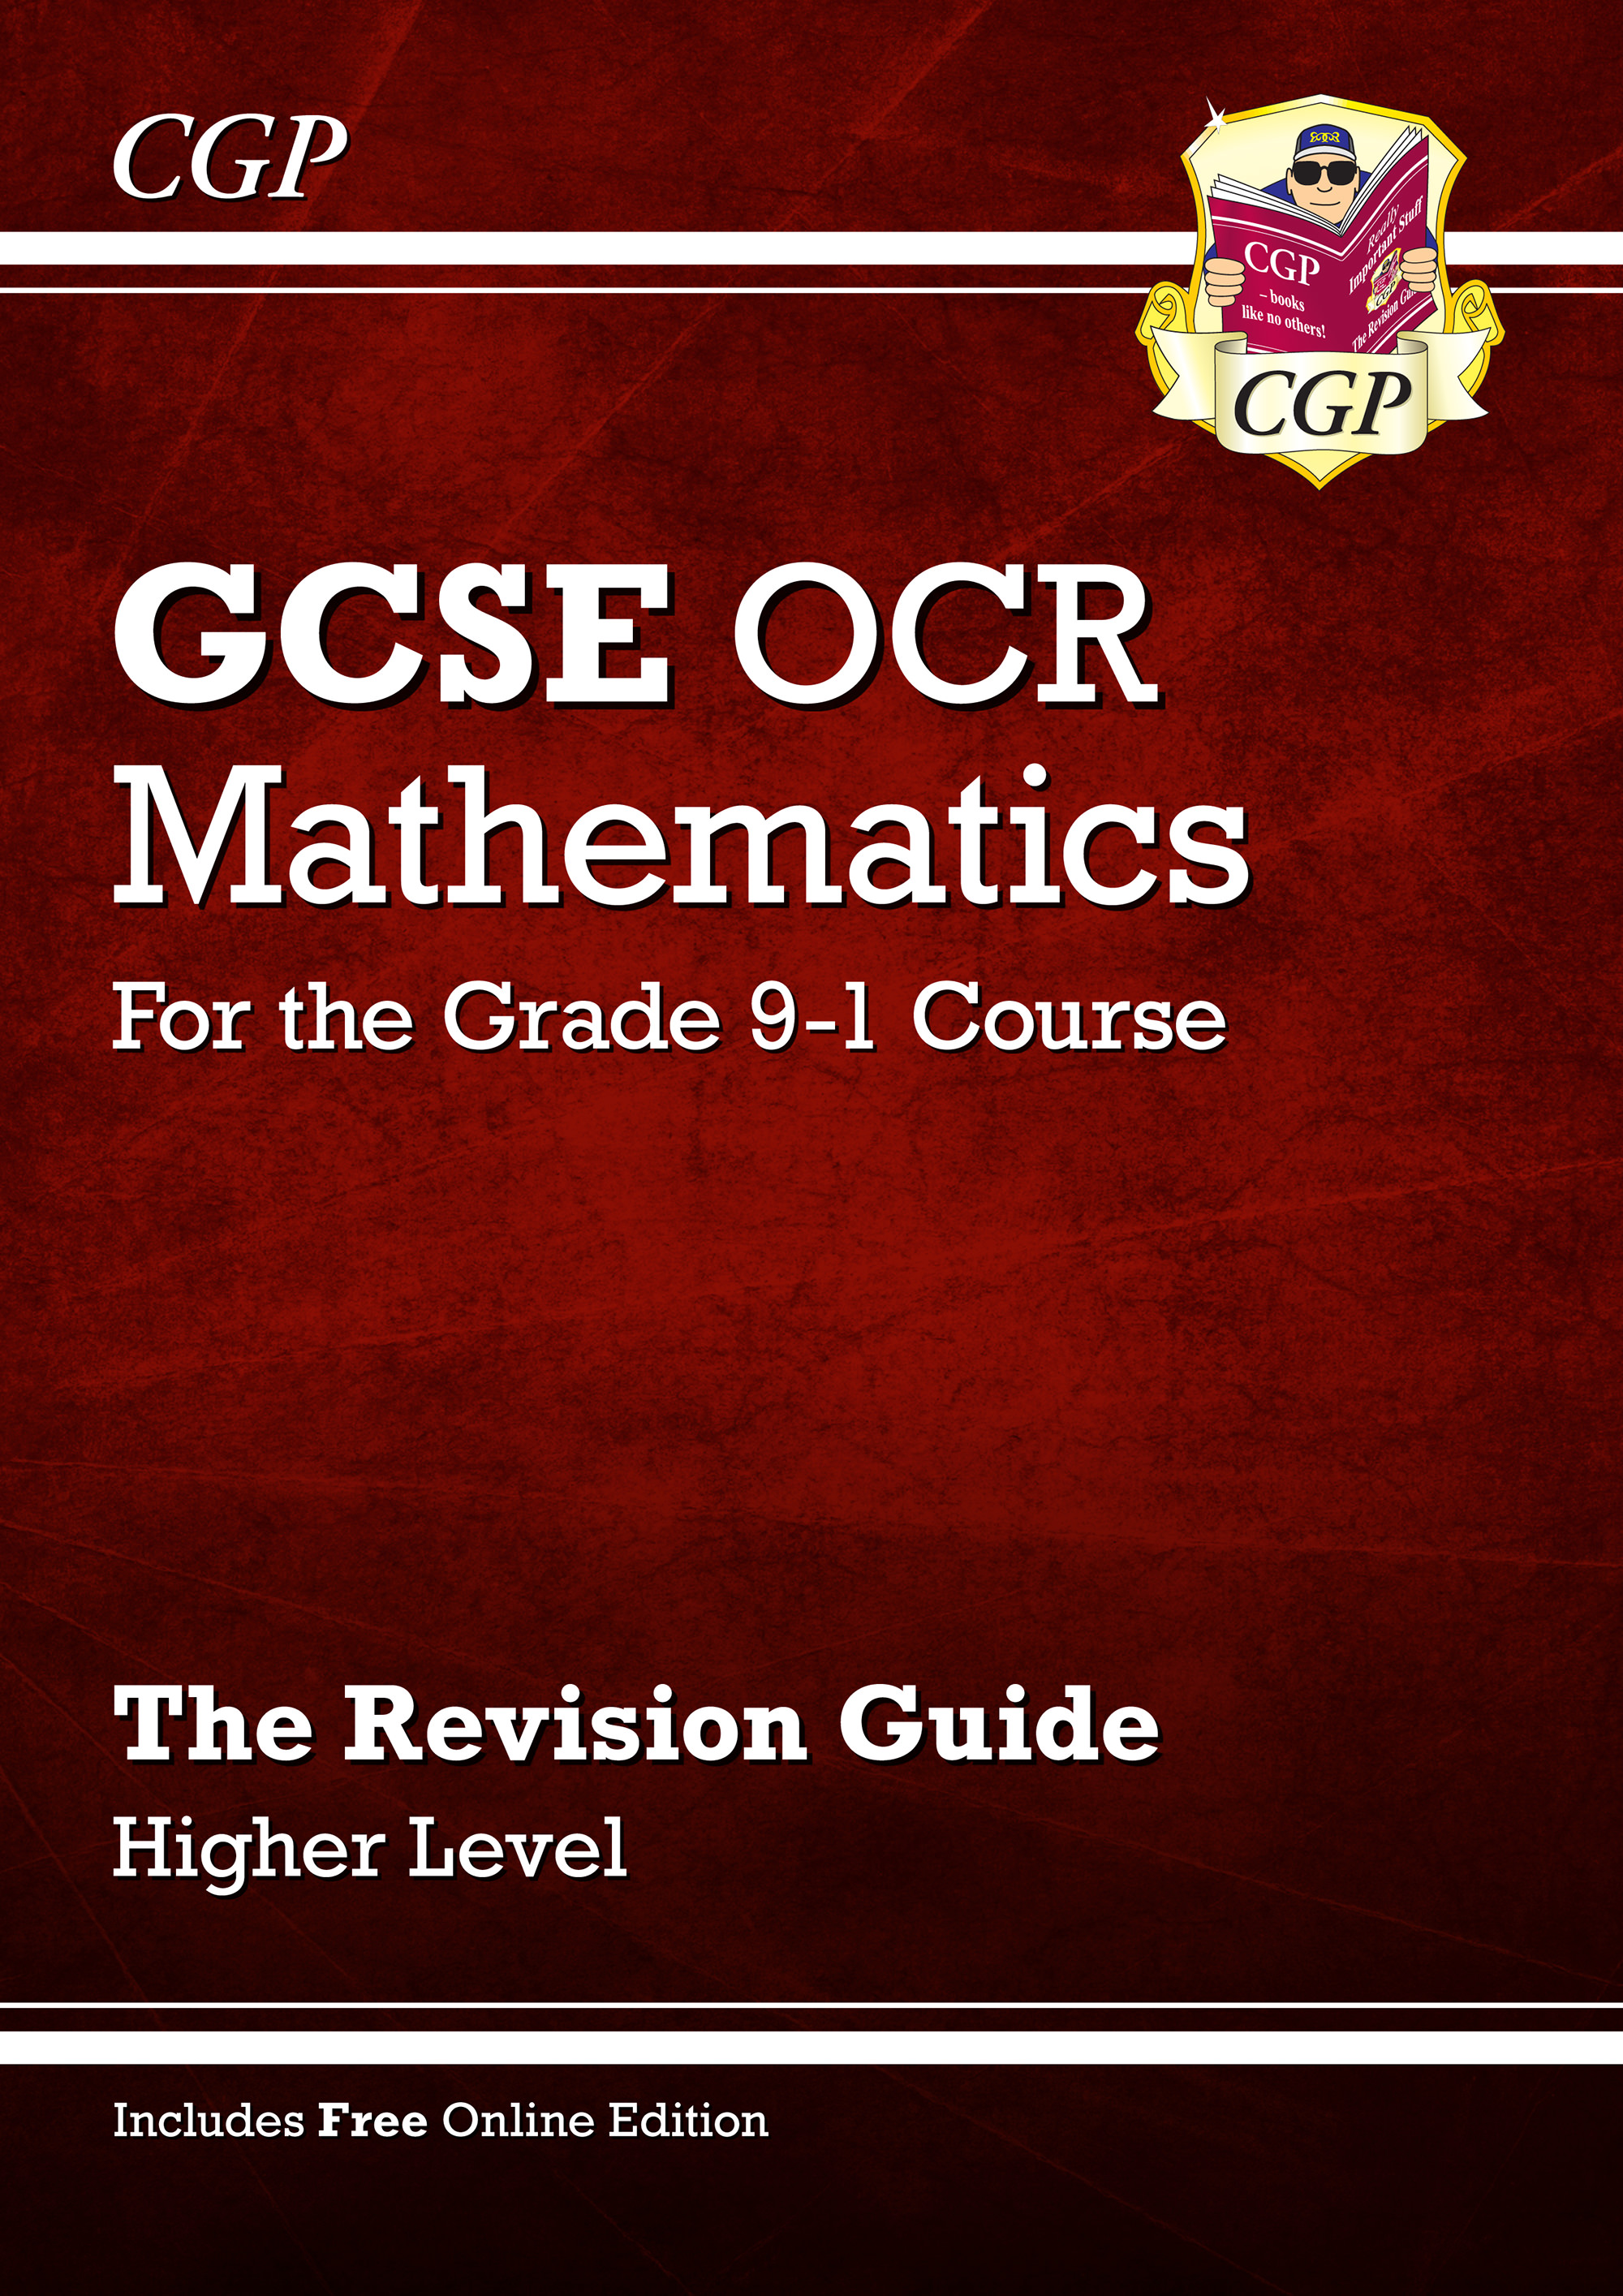 MCHR46 - GCSE Maths OCR Revision Guide: Higher - for the Grade 9-1 Course (with Online Edition)